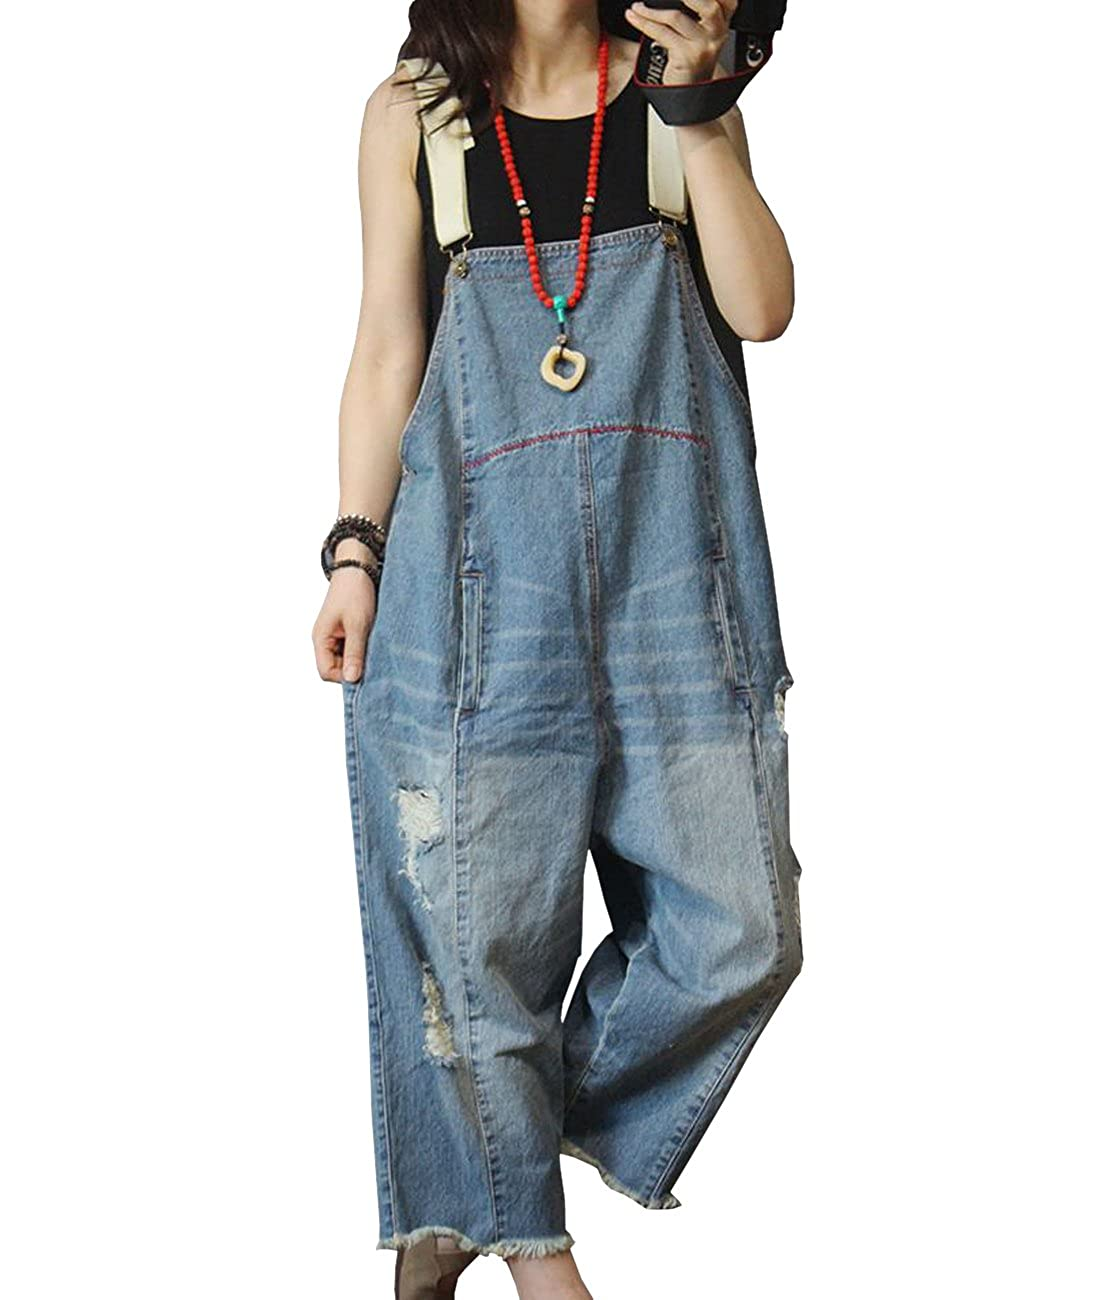 e4dc2de39642 Amazon.com  YESNO P60 Women Jeans Cropped Pants Overalls Jumpsuits Hand  Painted Poled Distressed Casual Loose Fit  Clothing